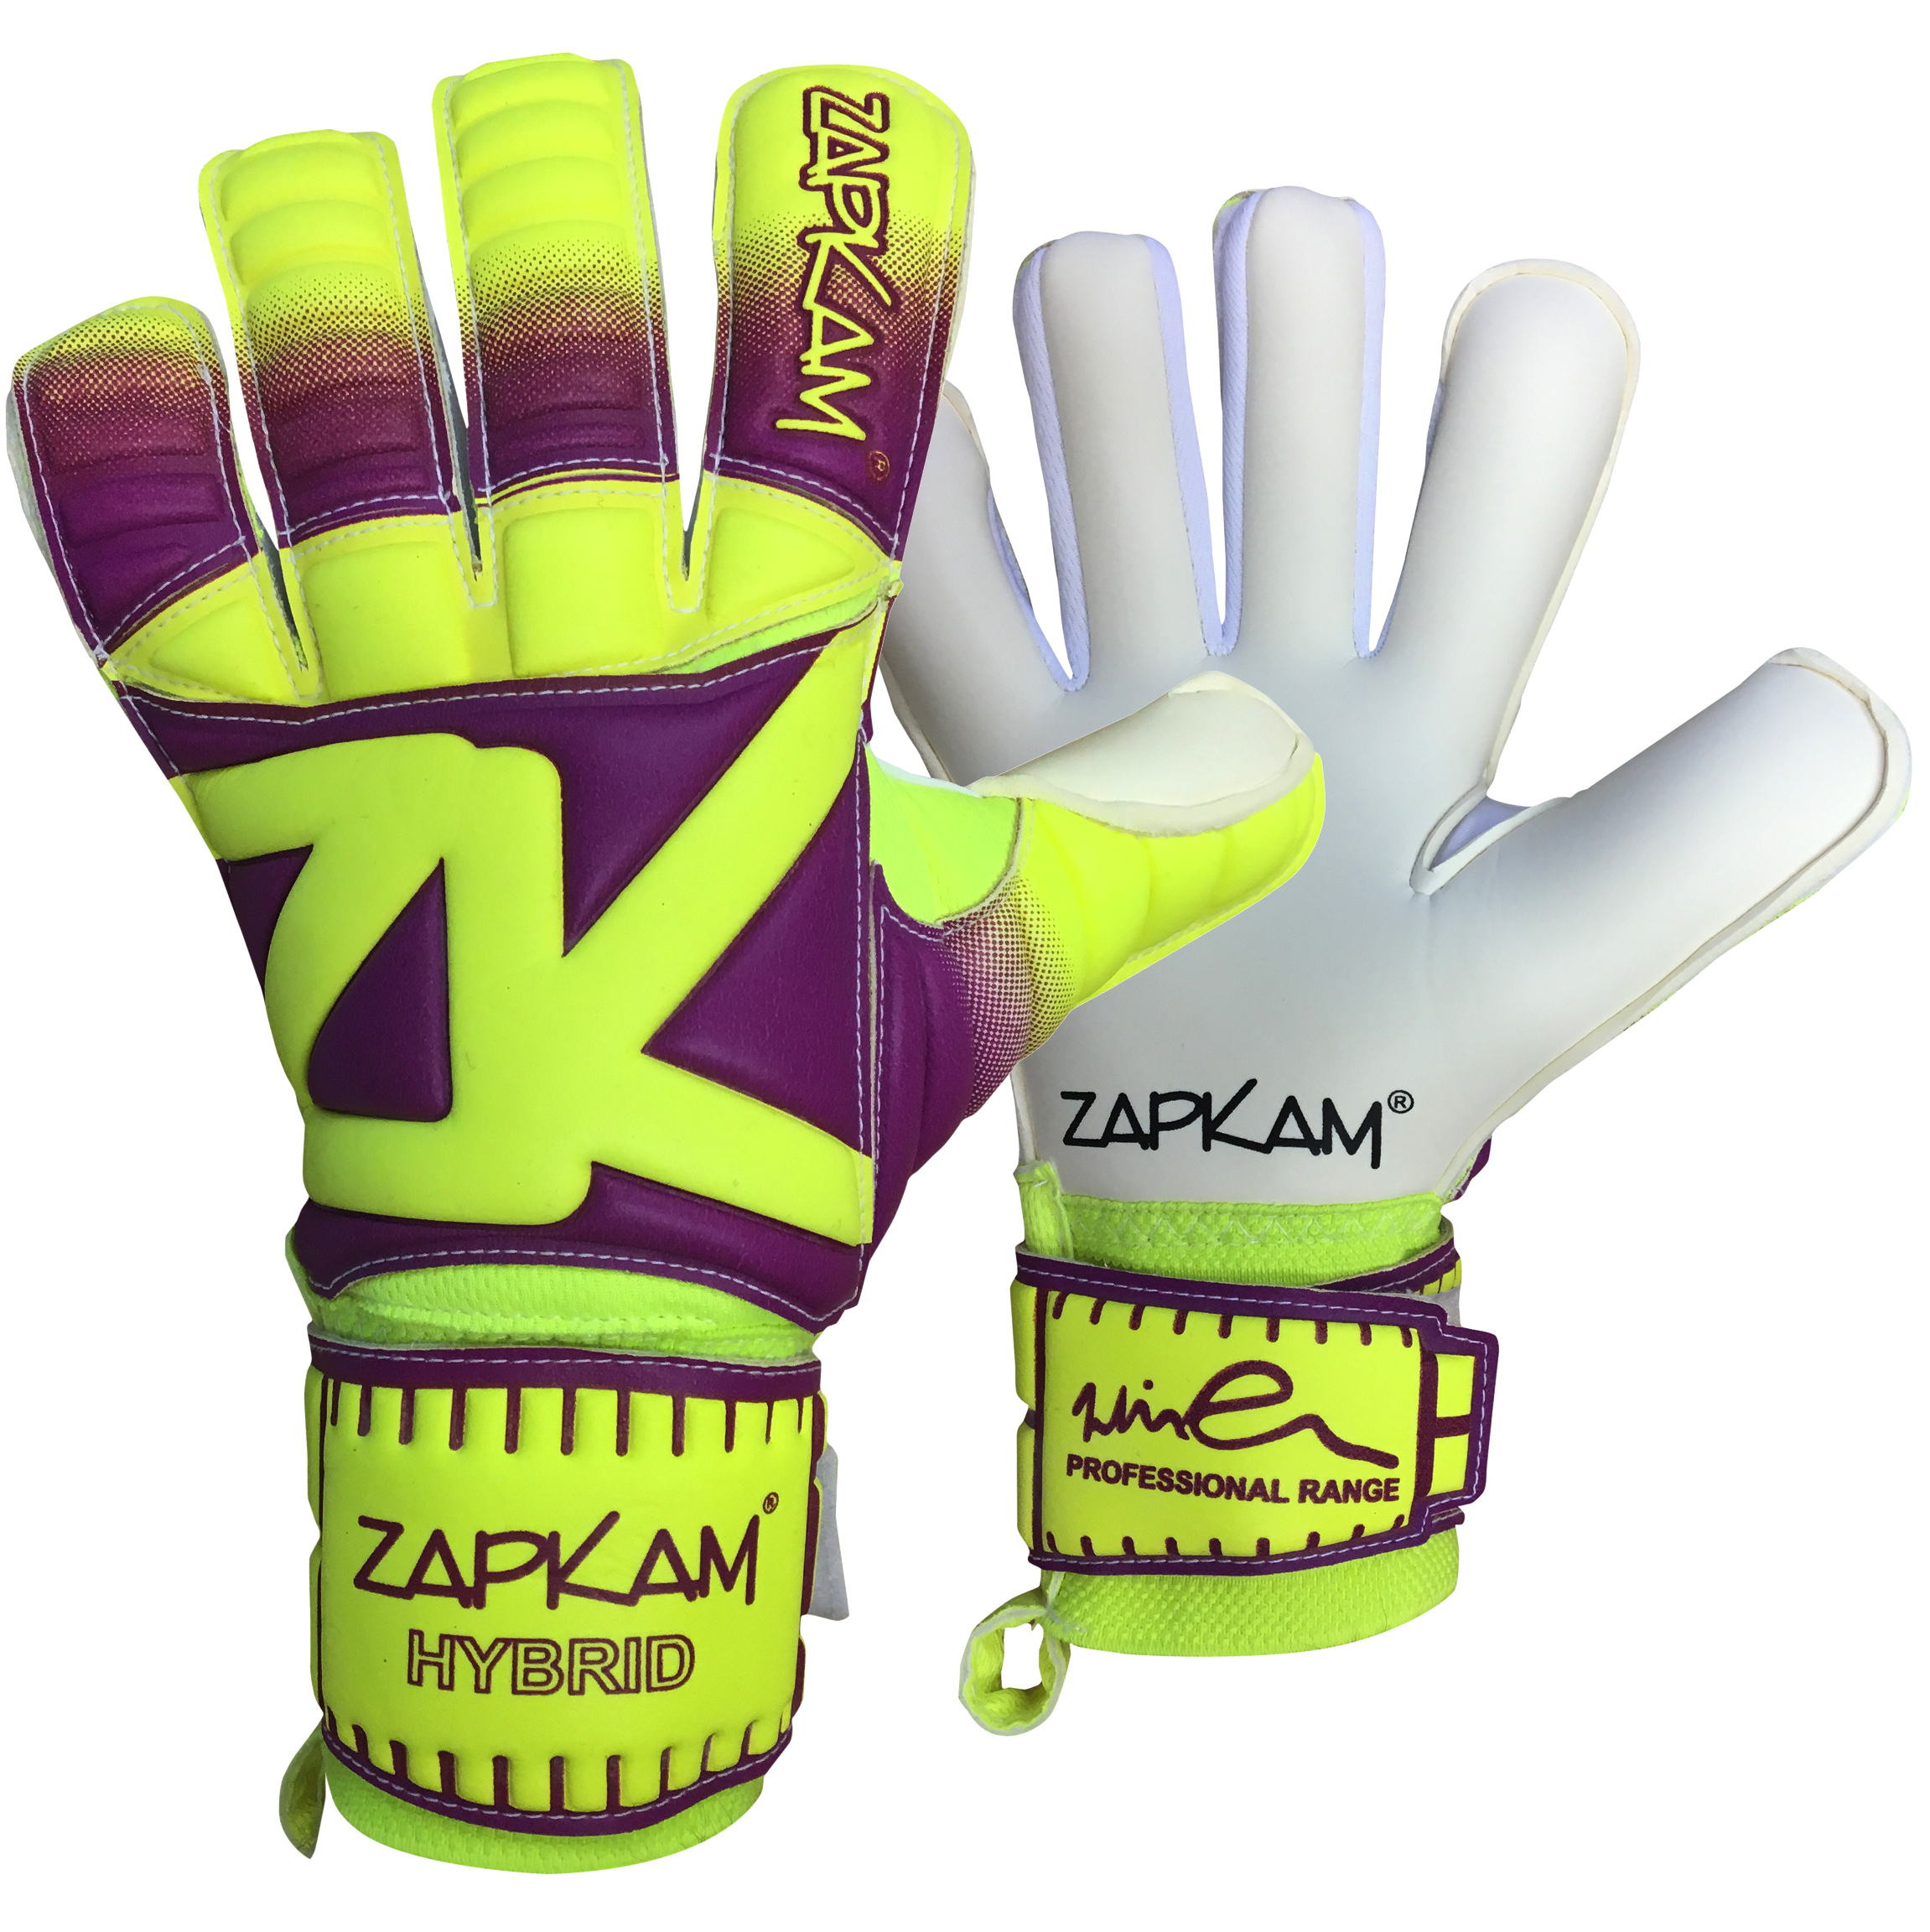 02-Hybrid-Cut-Goalkeeper-Gloves-1.jpg